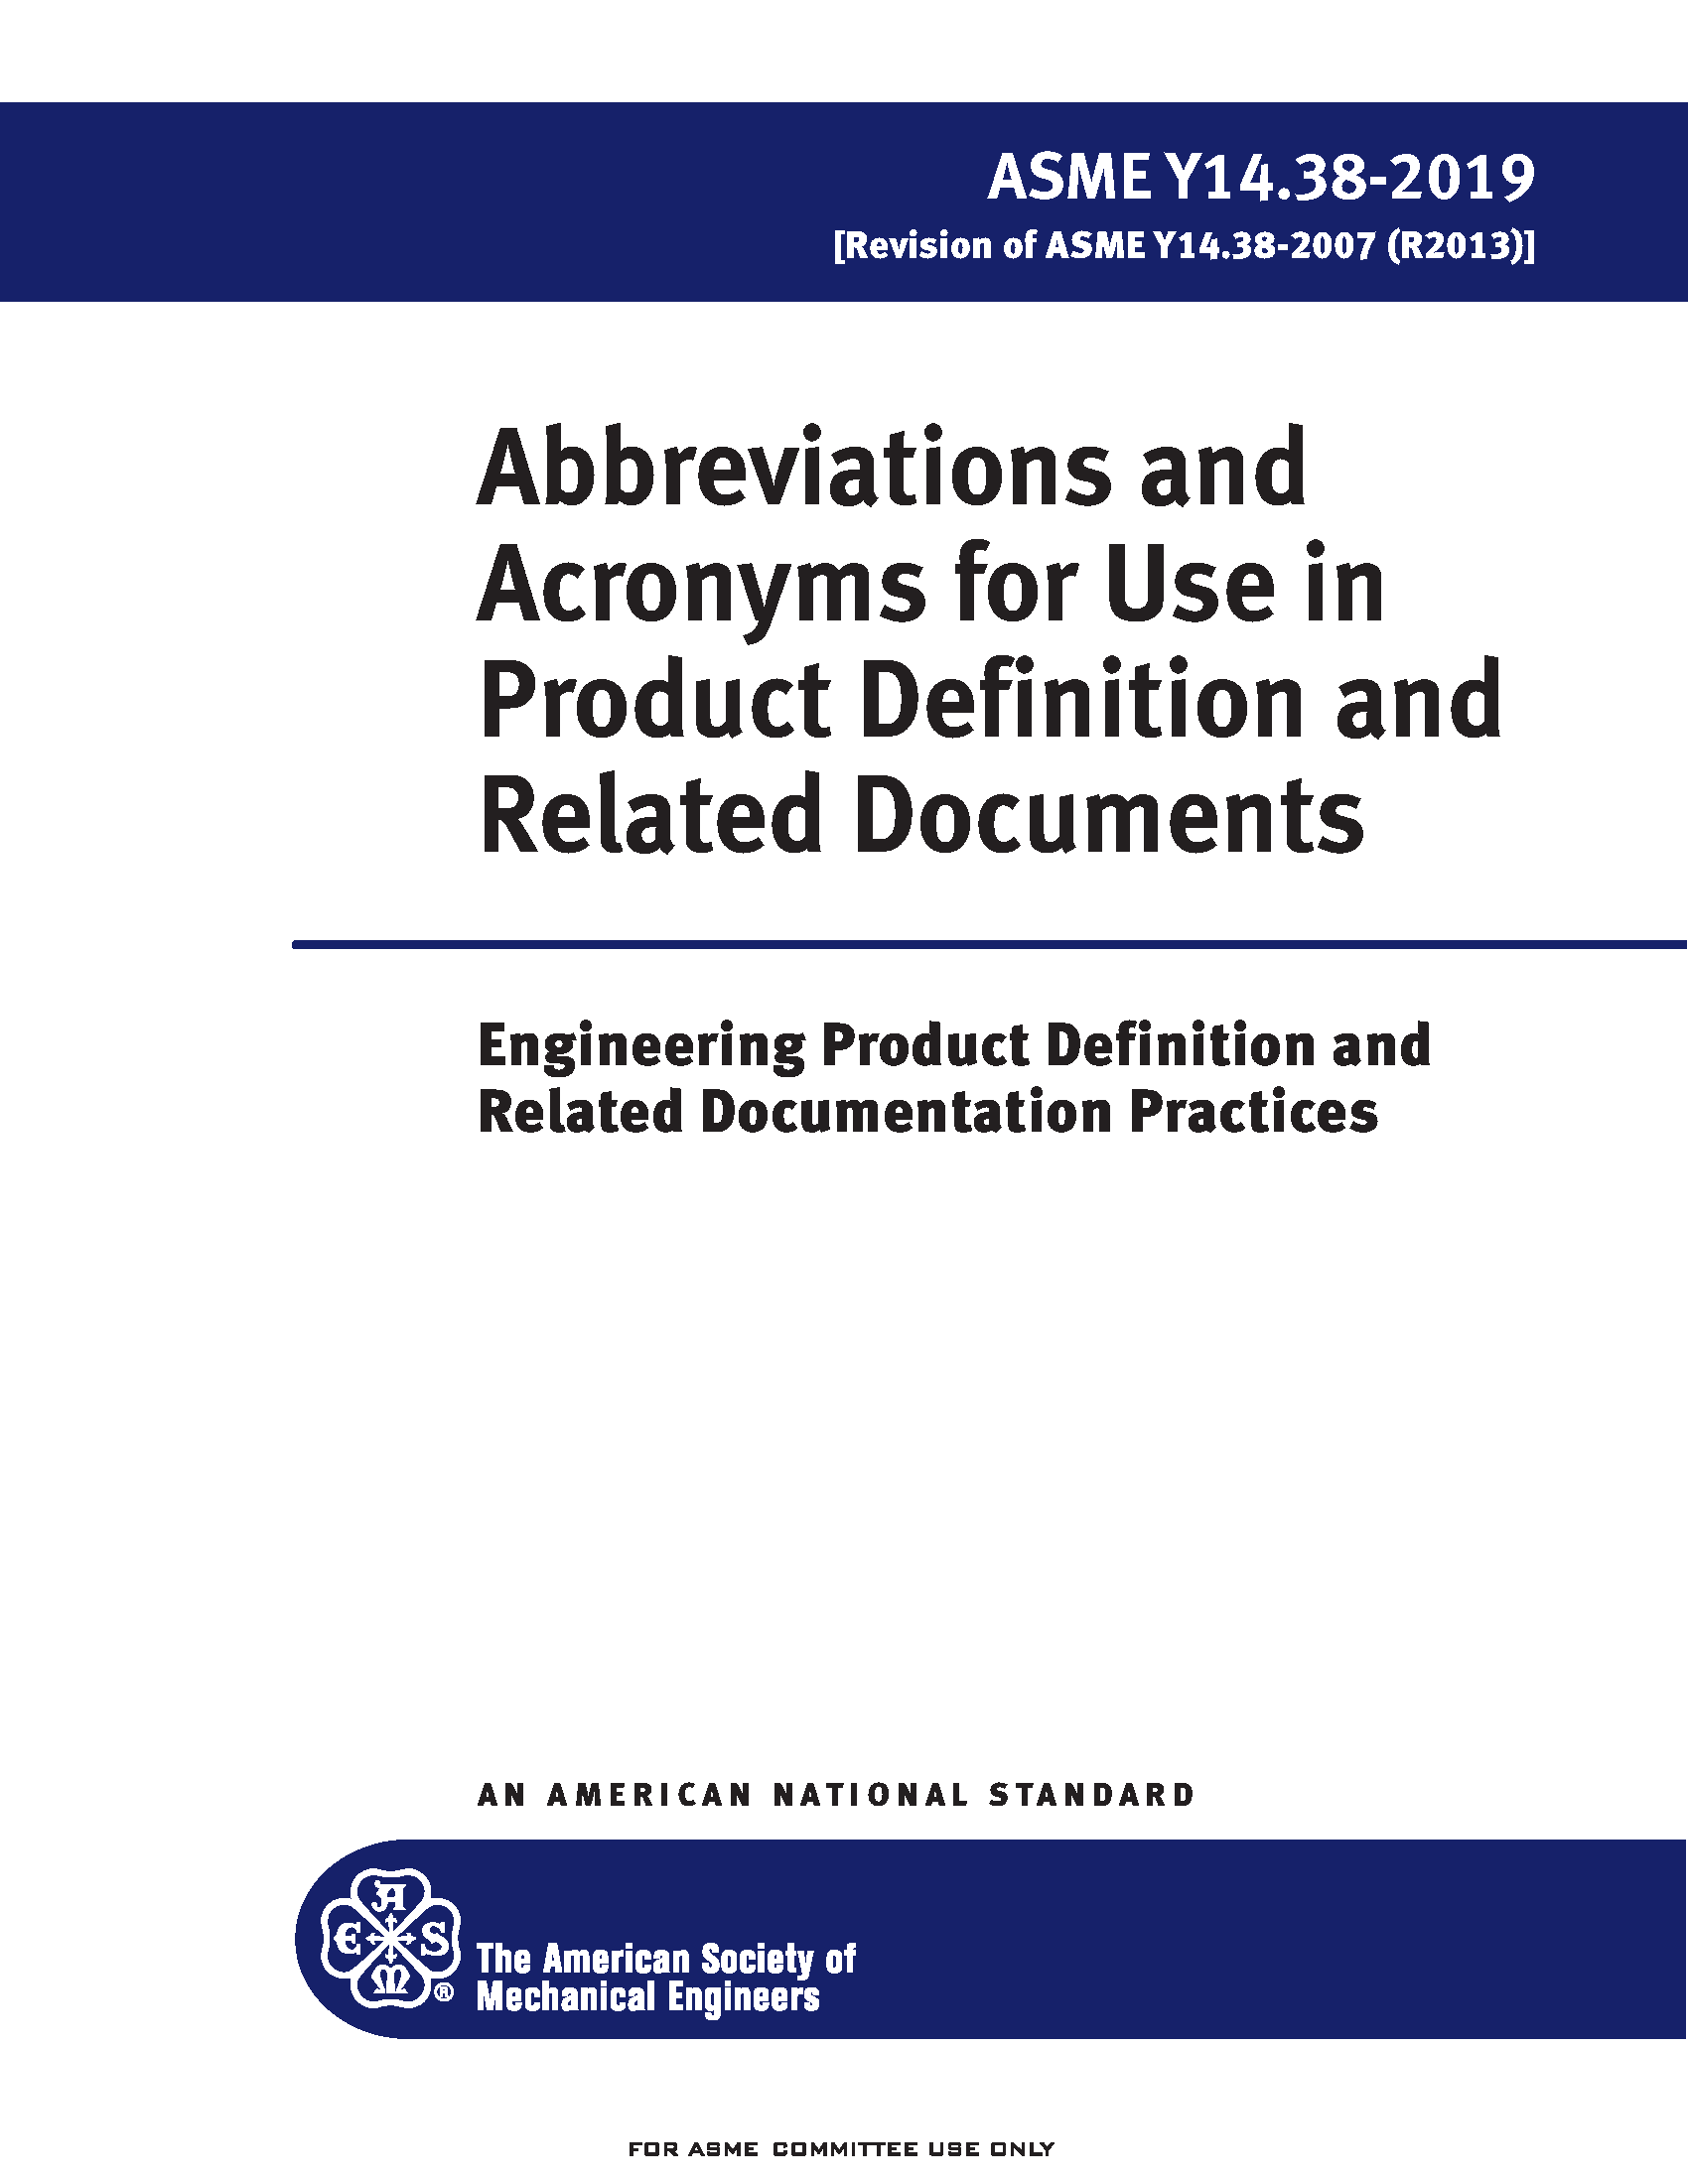 ASME Y14.38 2019 Abbreviations and Acronyms for Use on Drawings and Related Documents Standard